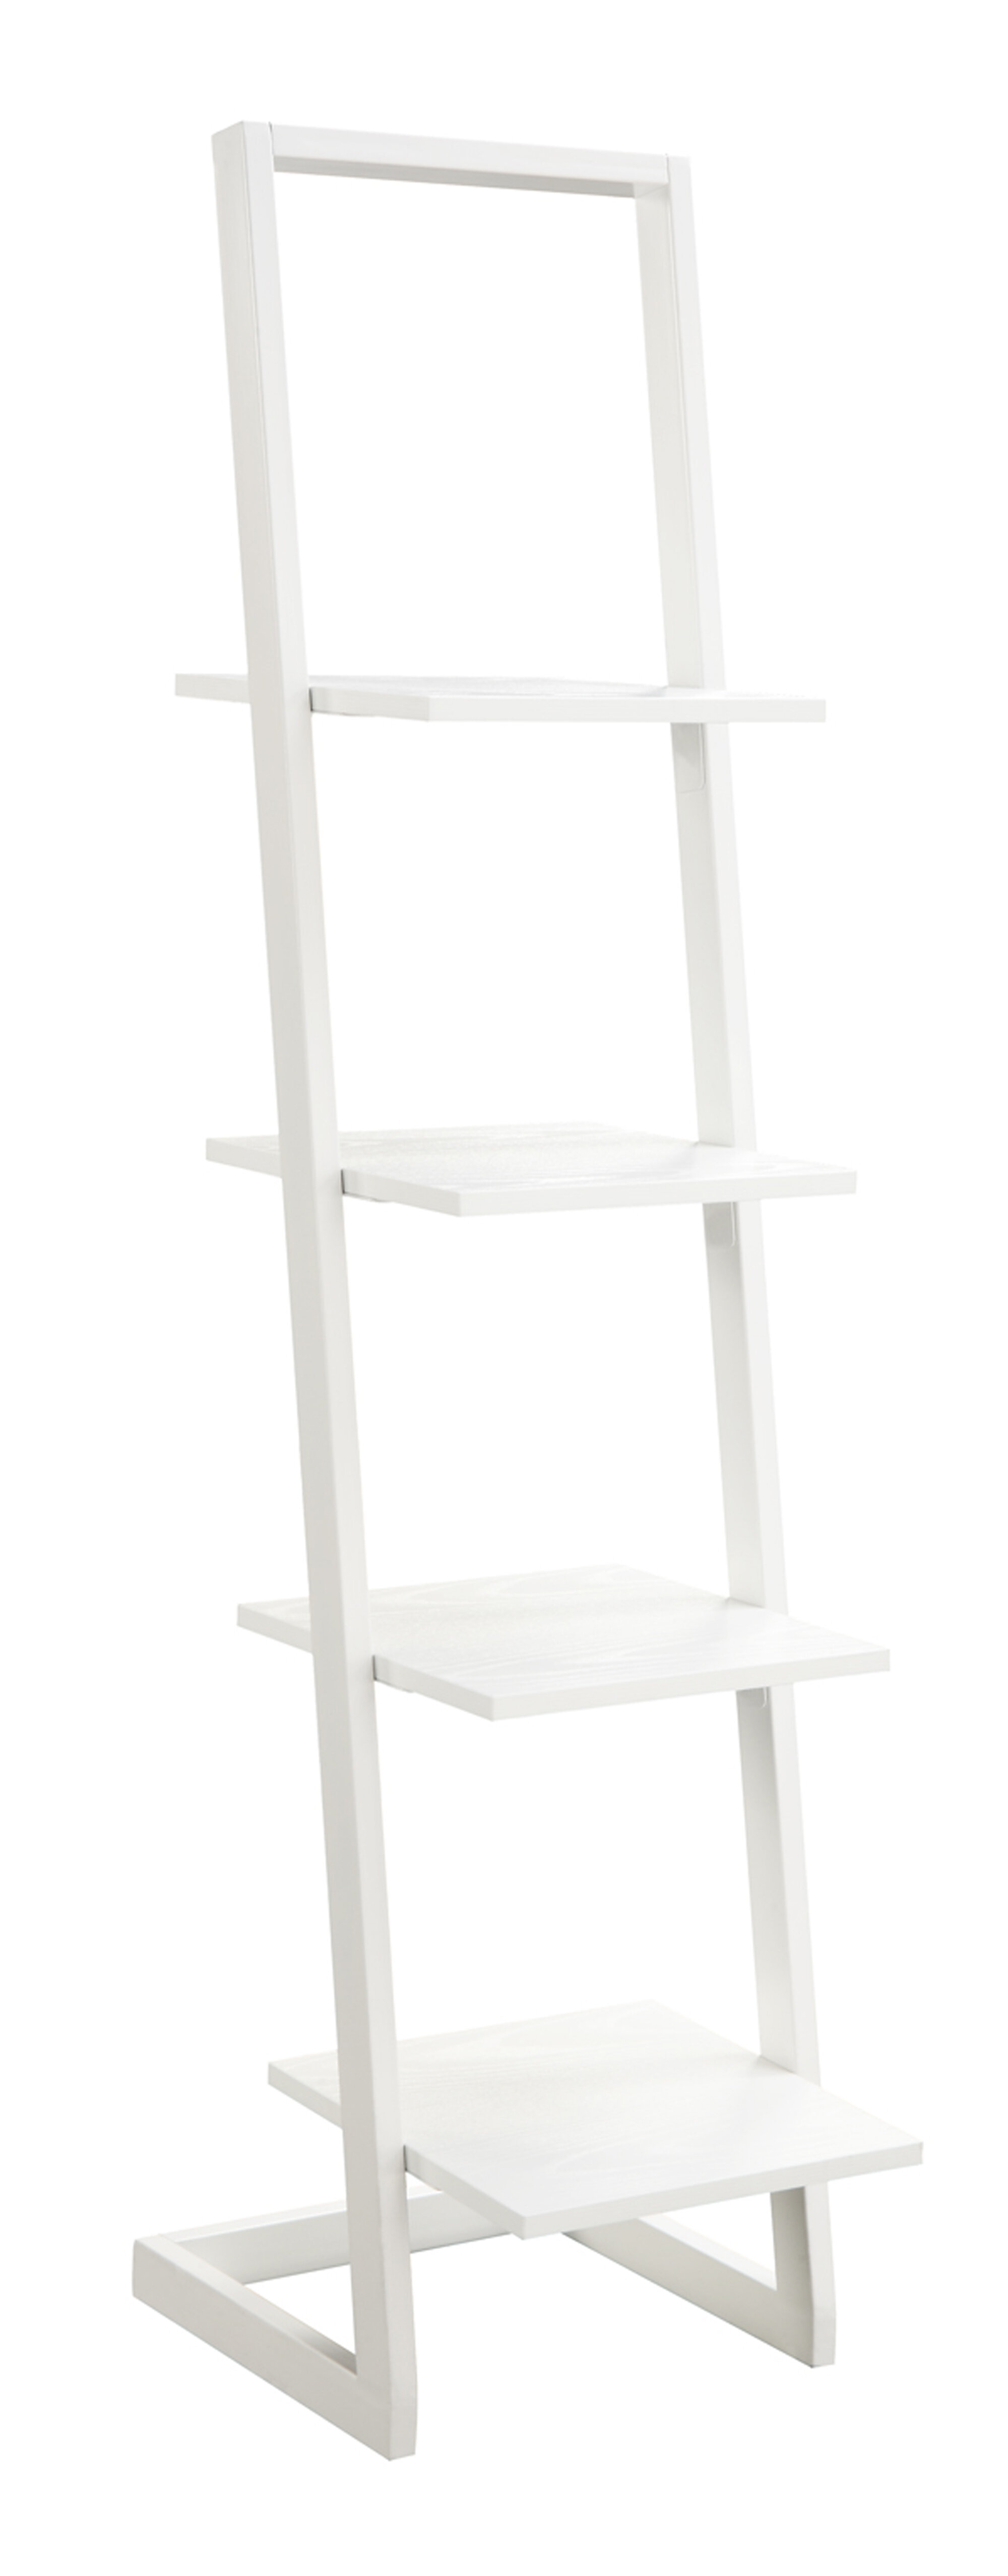 s ladder furniture bookcase ideas shelf full bookshelf step ikea pictures white m home stupendous shelves storage wooden reclaimed shelving wonderful modern furnitureikea design